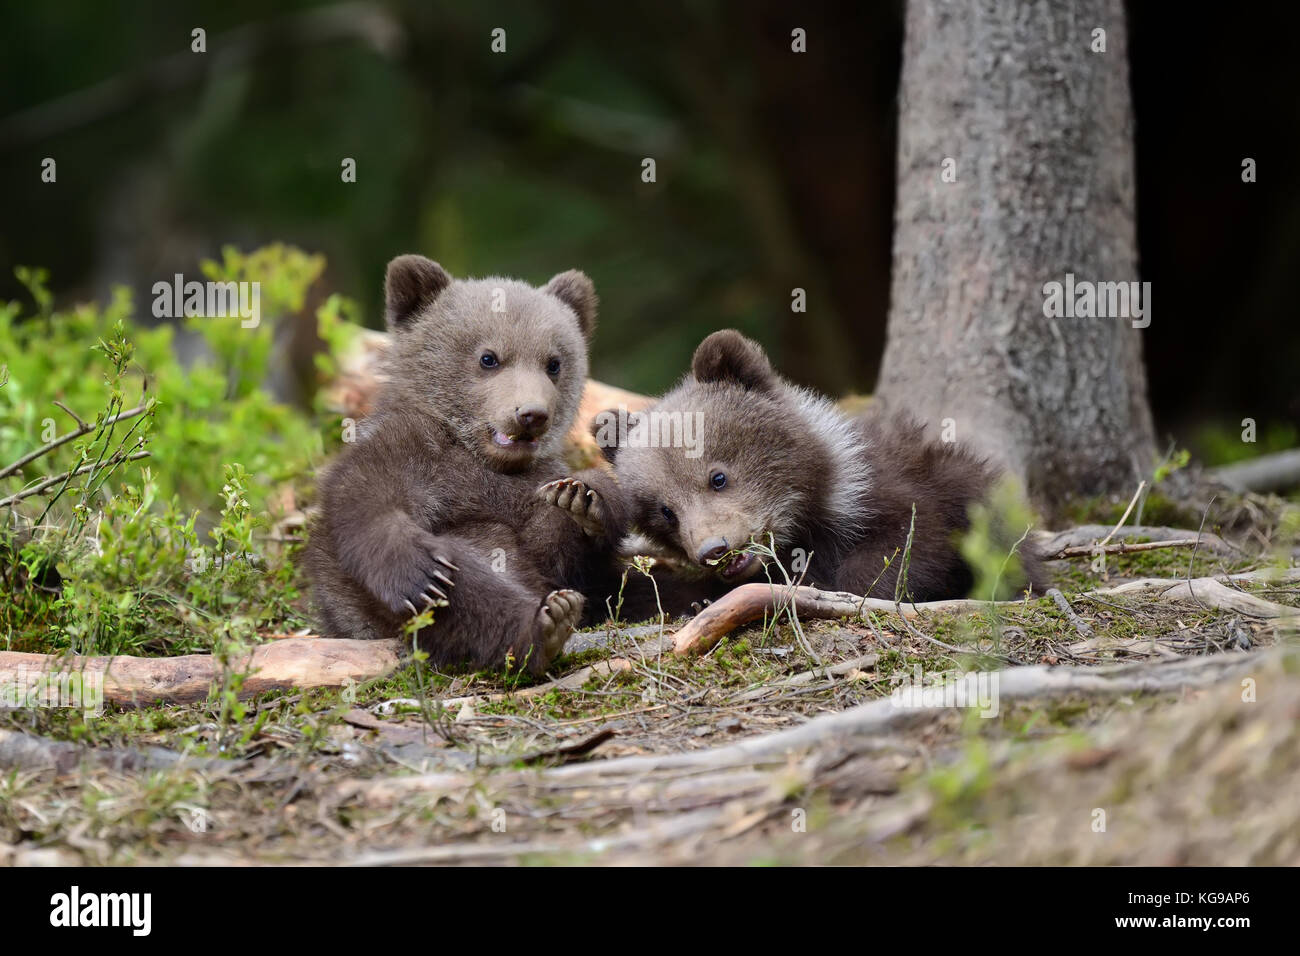 Young brown bear in the forest. Portrait of brown bear. Animal in the nature habitat. Cub of brown bear without - Stock Image